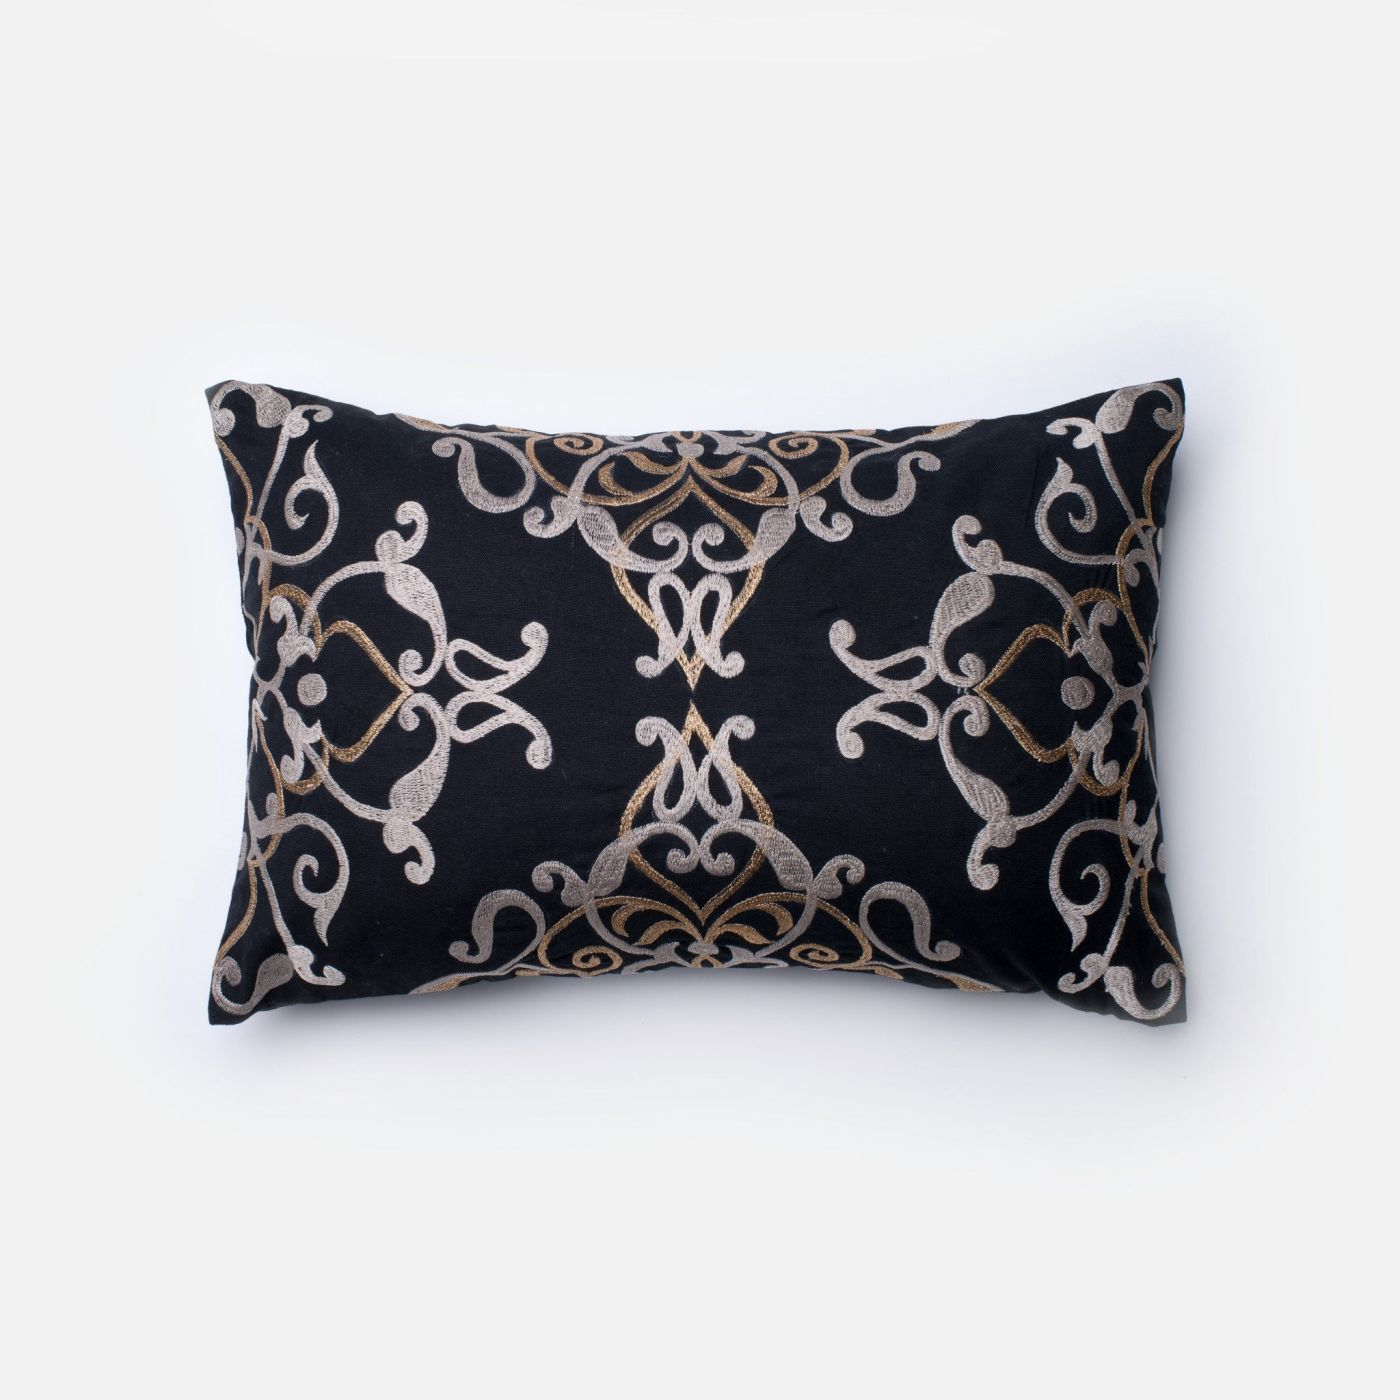 Loloi Rugs Loloi Black / Taupe Decorative Throw Pillow (P0202) DSETP0202BLTAPIL5. Only $79.00 at ...